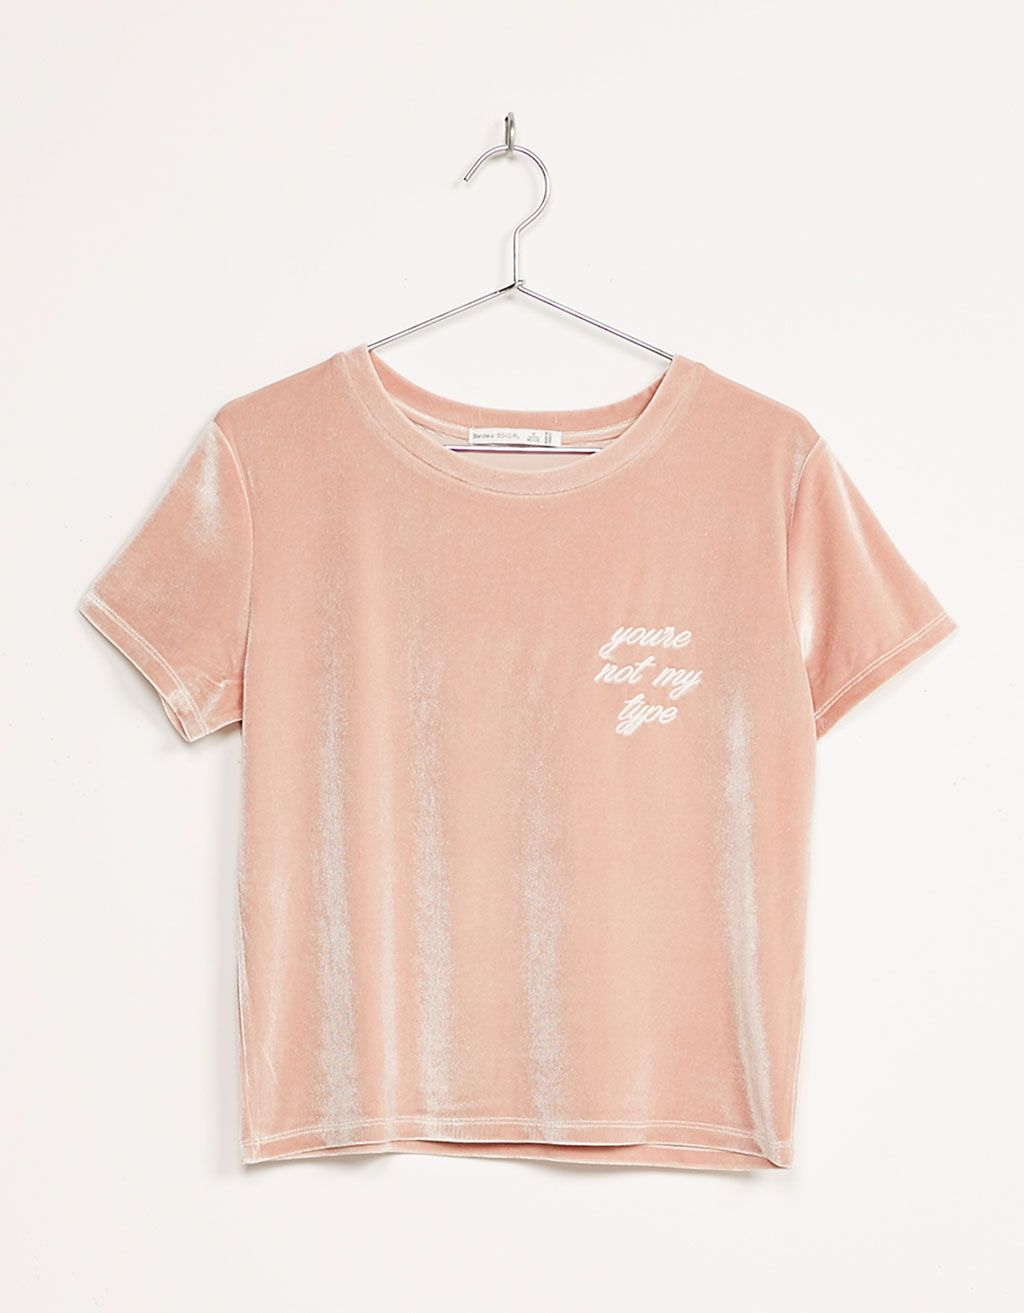 Embroidered Text Velvet Top New Bershka United Kingdom Kleidung Tuch Kleidungsstuck